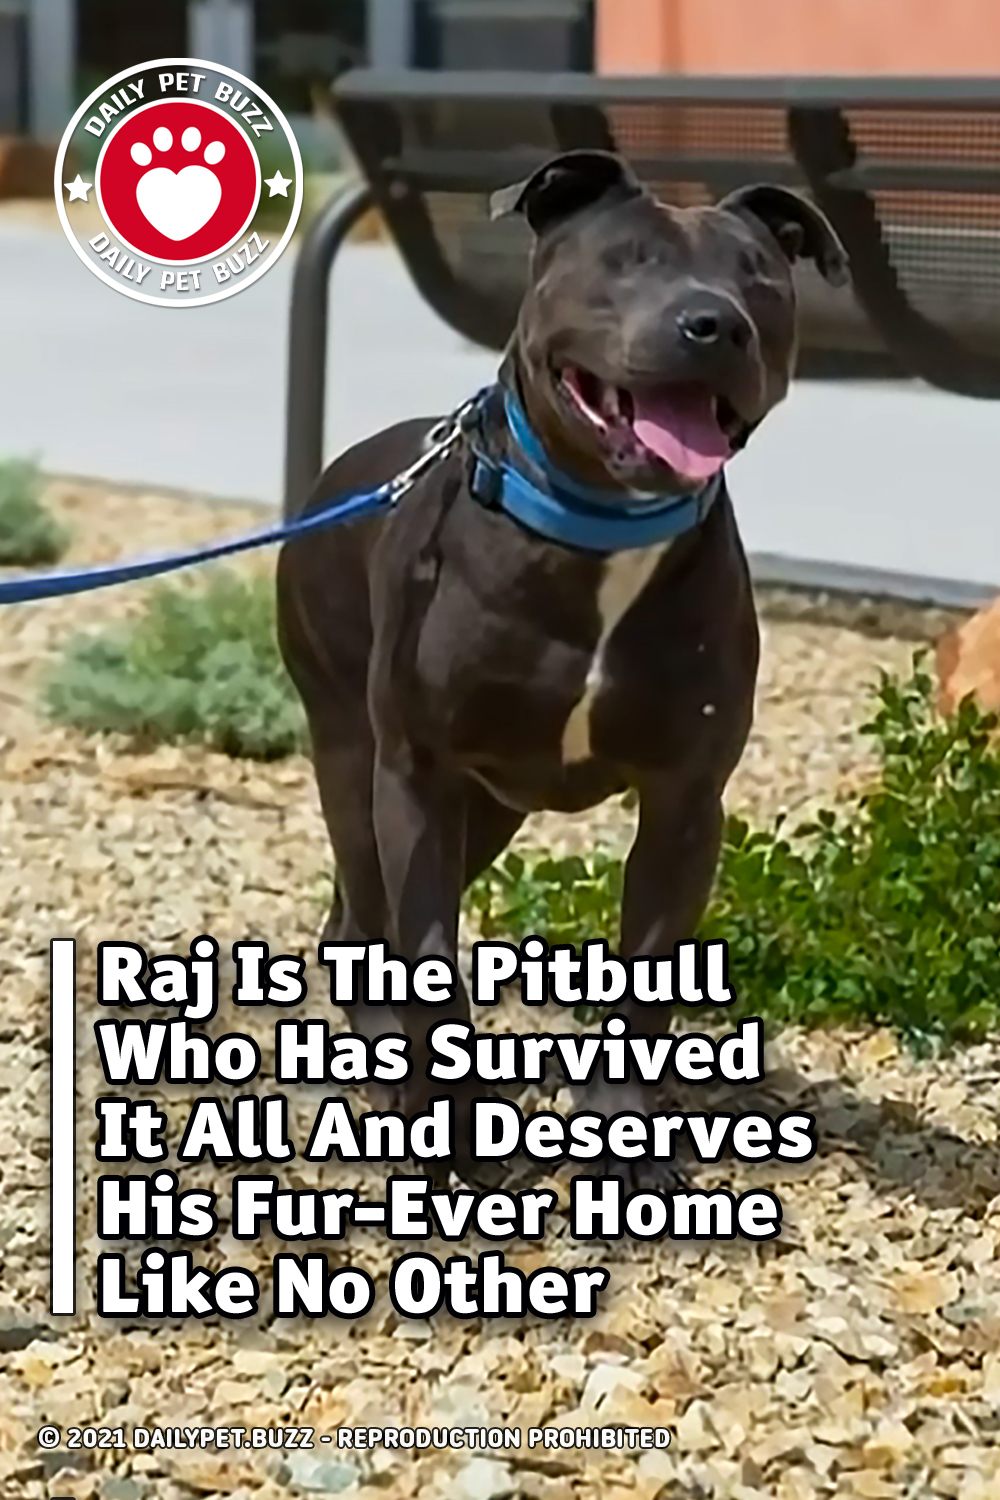 Raj Is The Pitbull Who Has Survived It All And Deserves His Fur-Ever Home Like No Other